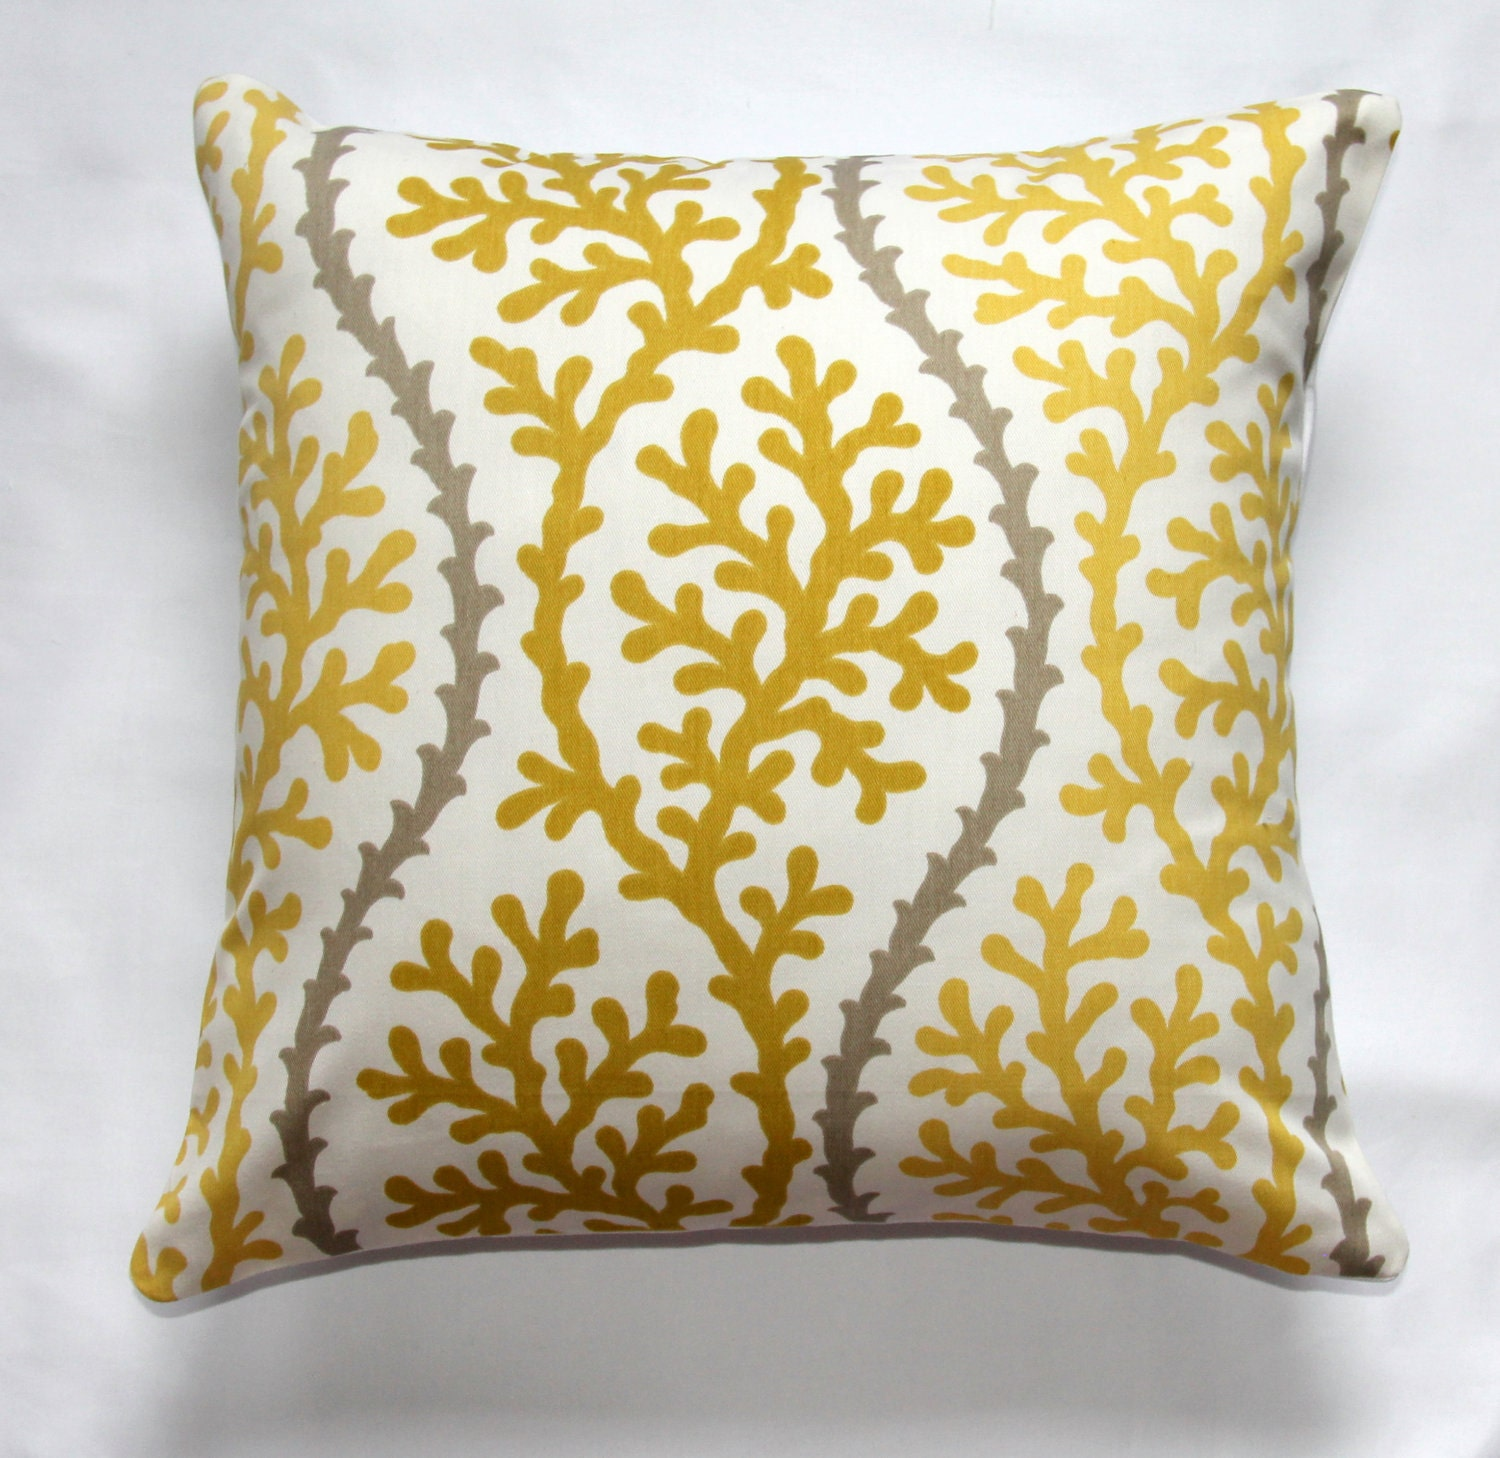 Decorative Throw Pillows Etsy : Pillows decorative pillow accent pillow by ModernTouchDesigns